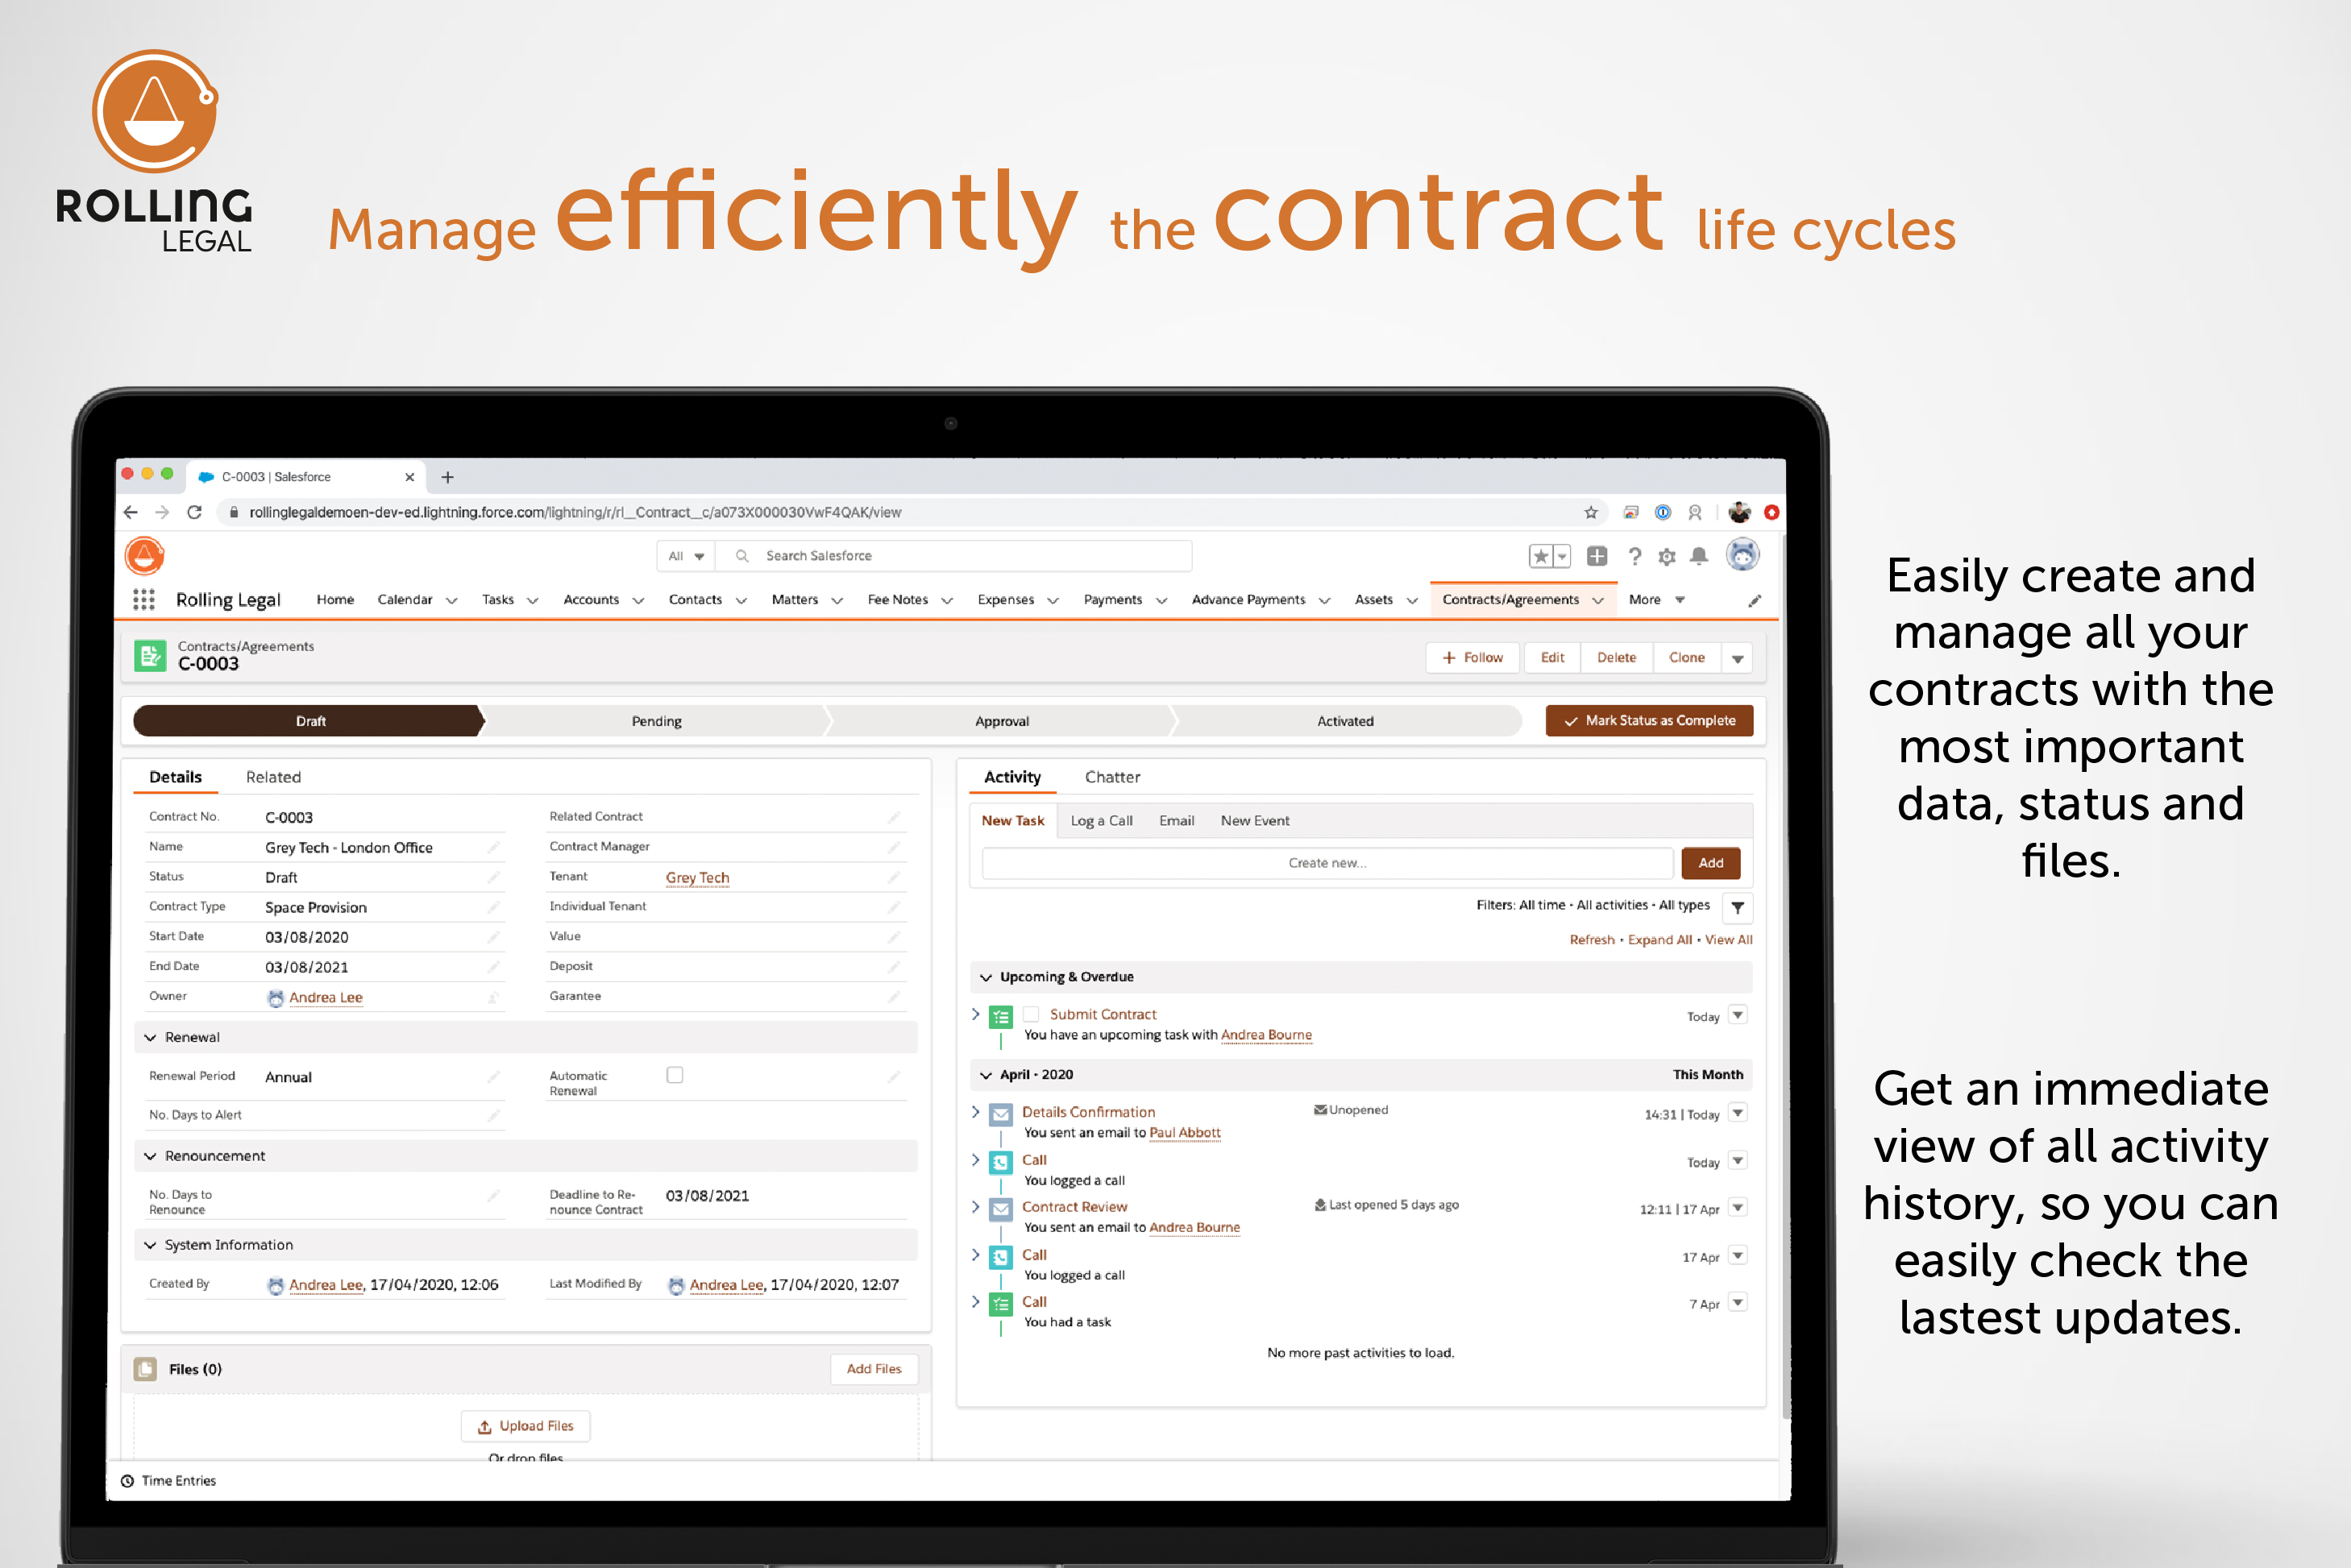 Rolling Legal: Manage efficiently the contract life cycles!